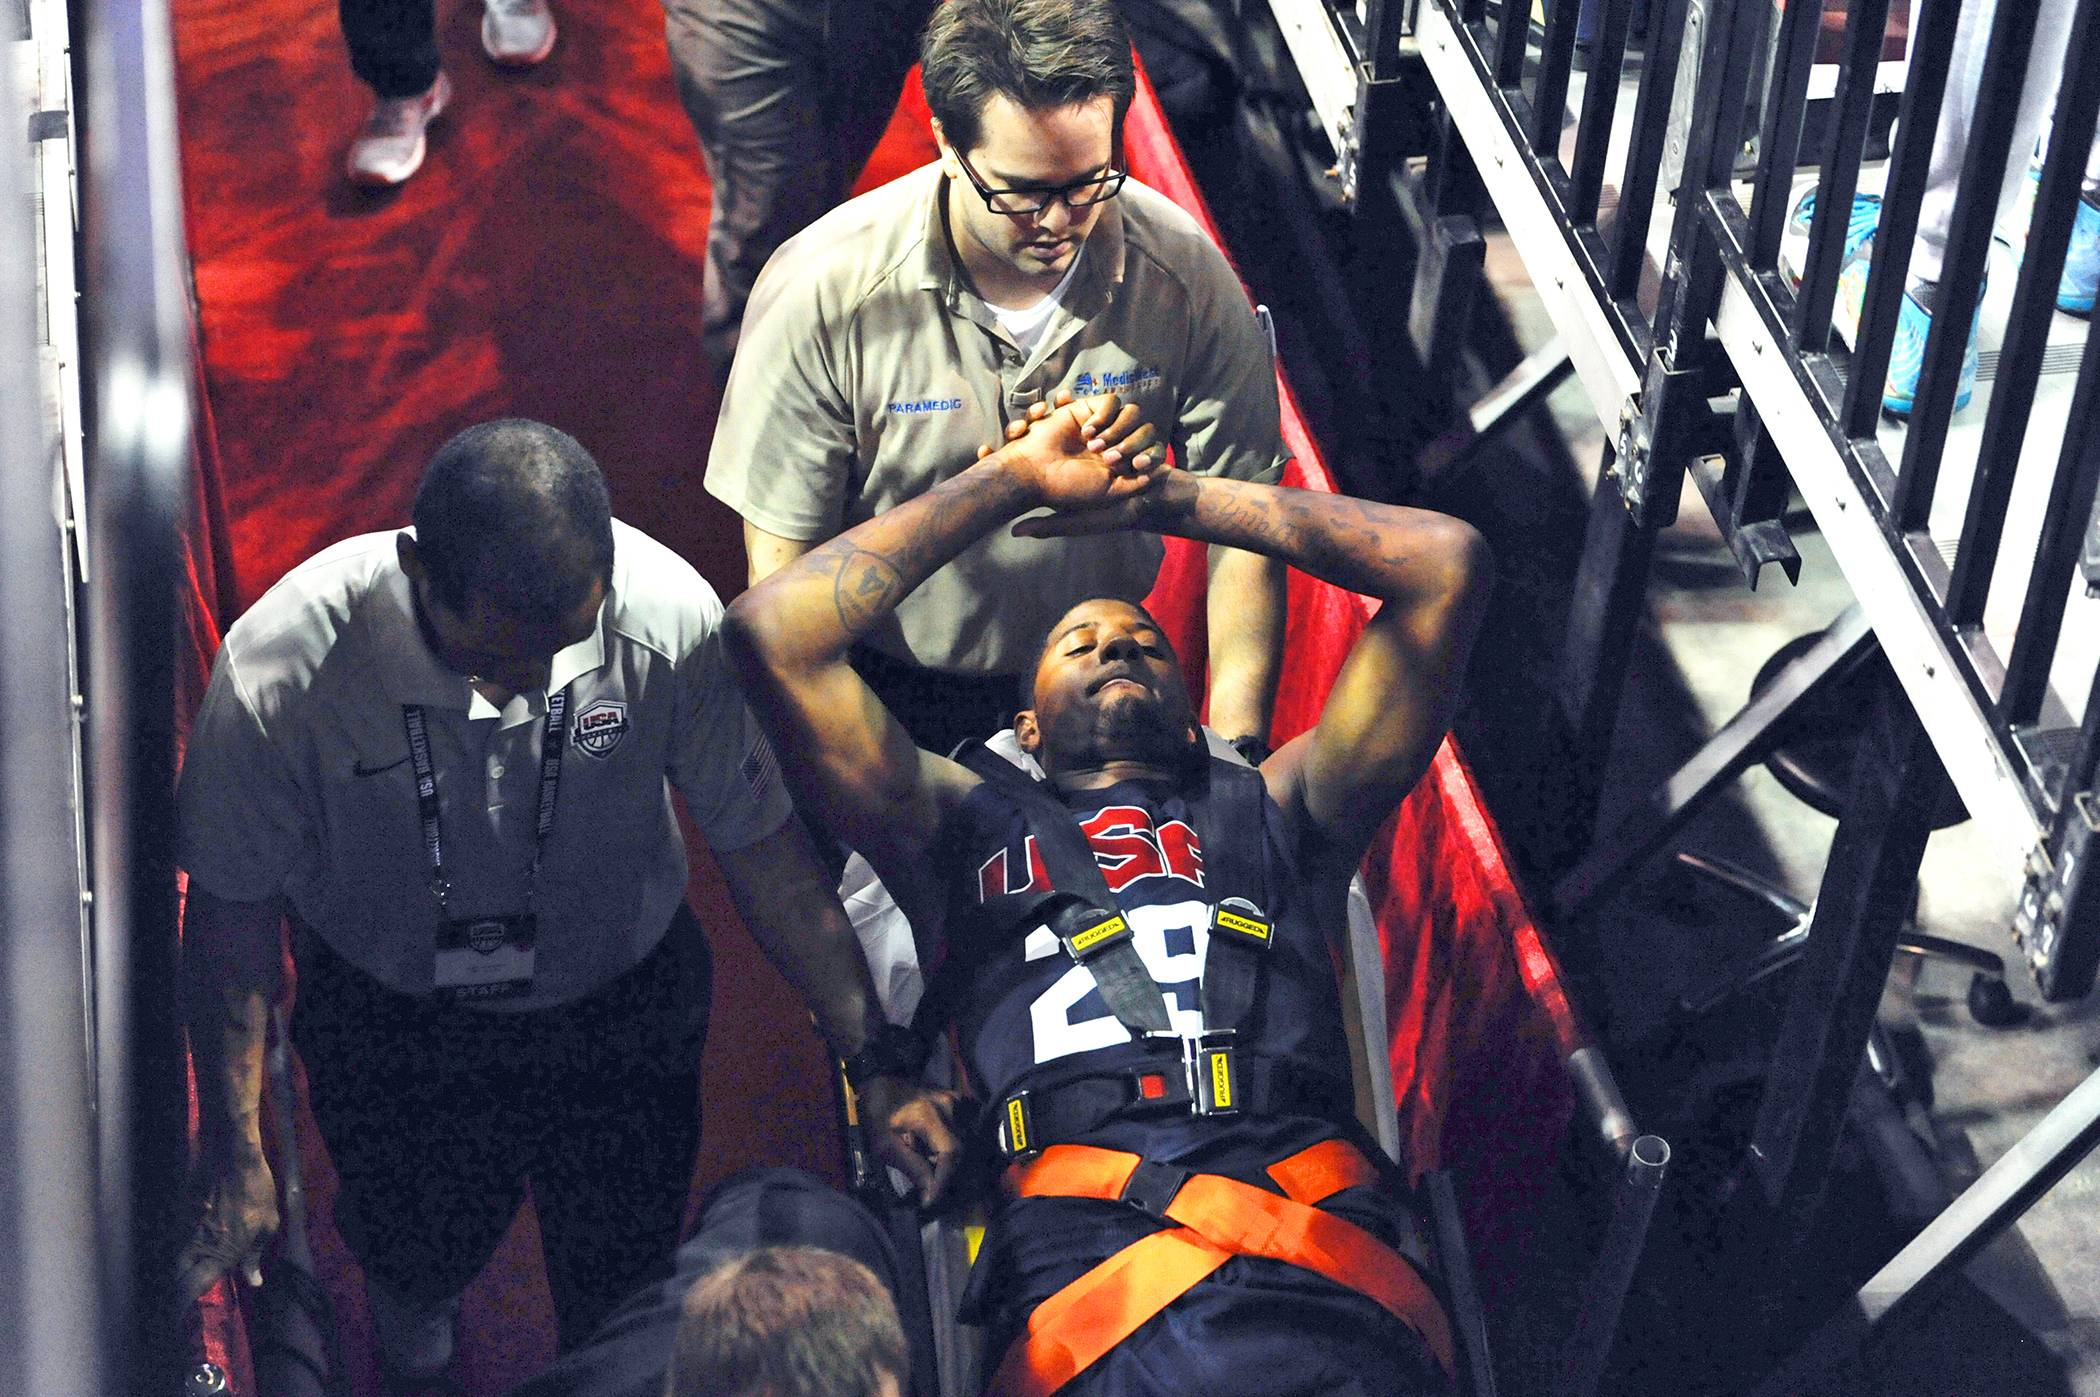 In this photo provided by the Las Vegas News Bureau,  Indiana Pacers' Paul George is carted off the court after breaking his right leg during the USA Basketball Showcase intrasquad game in Las Vegas on Friday, Aug. 1, 2014.